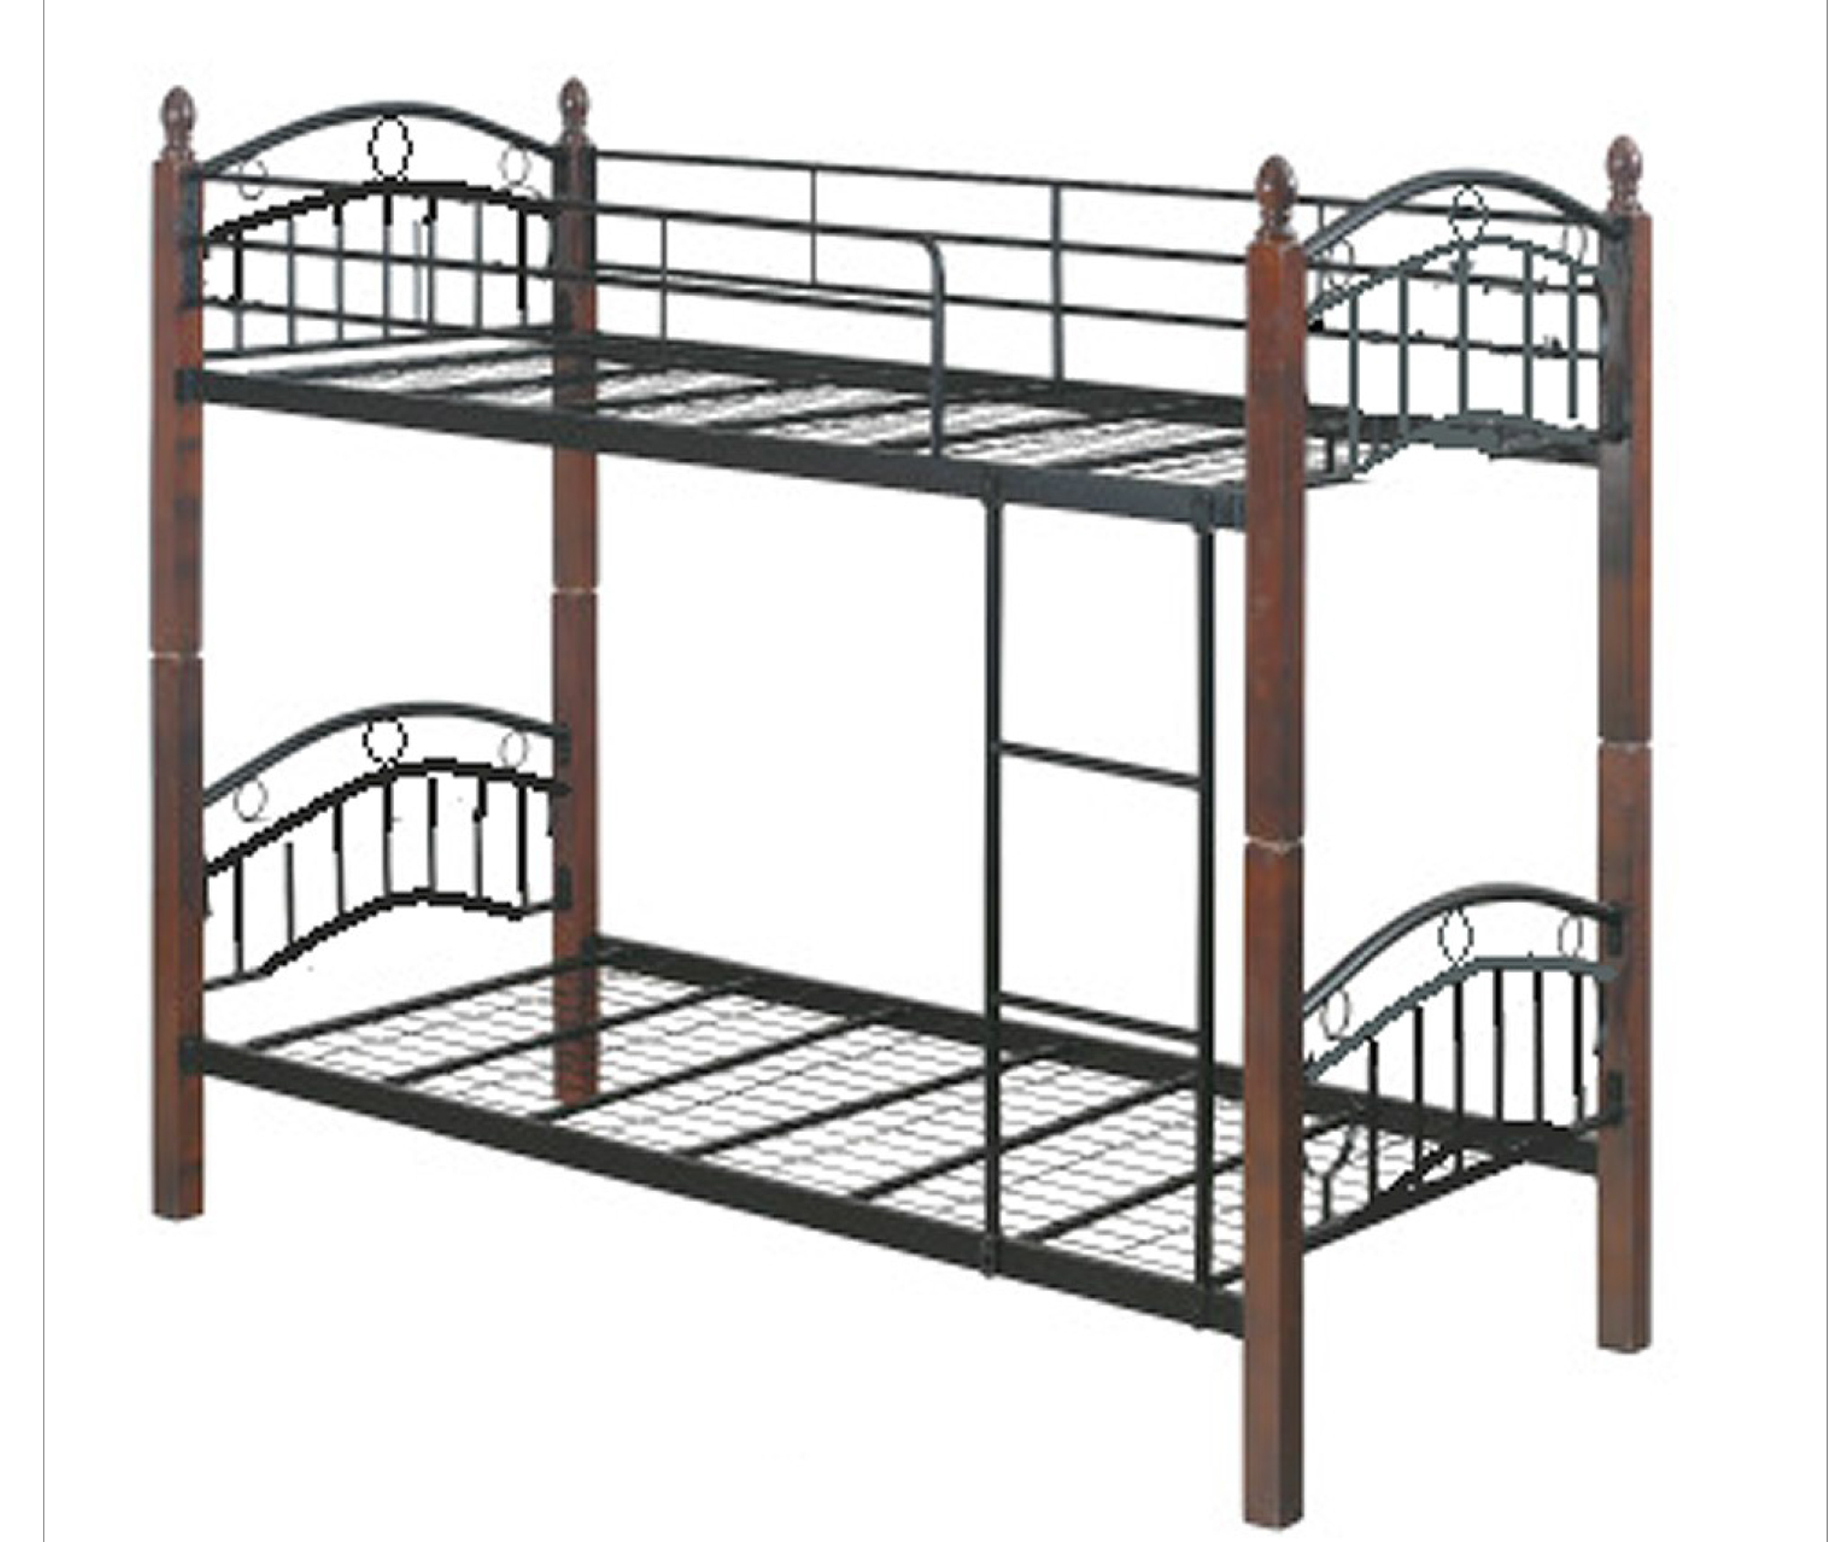 dew foam double deck bed frame with 4 x 36 x 75 mattress